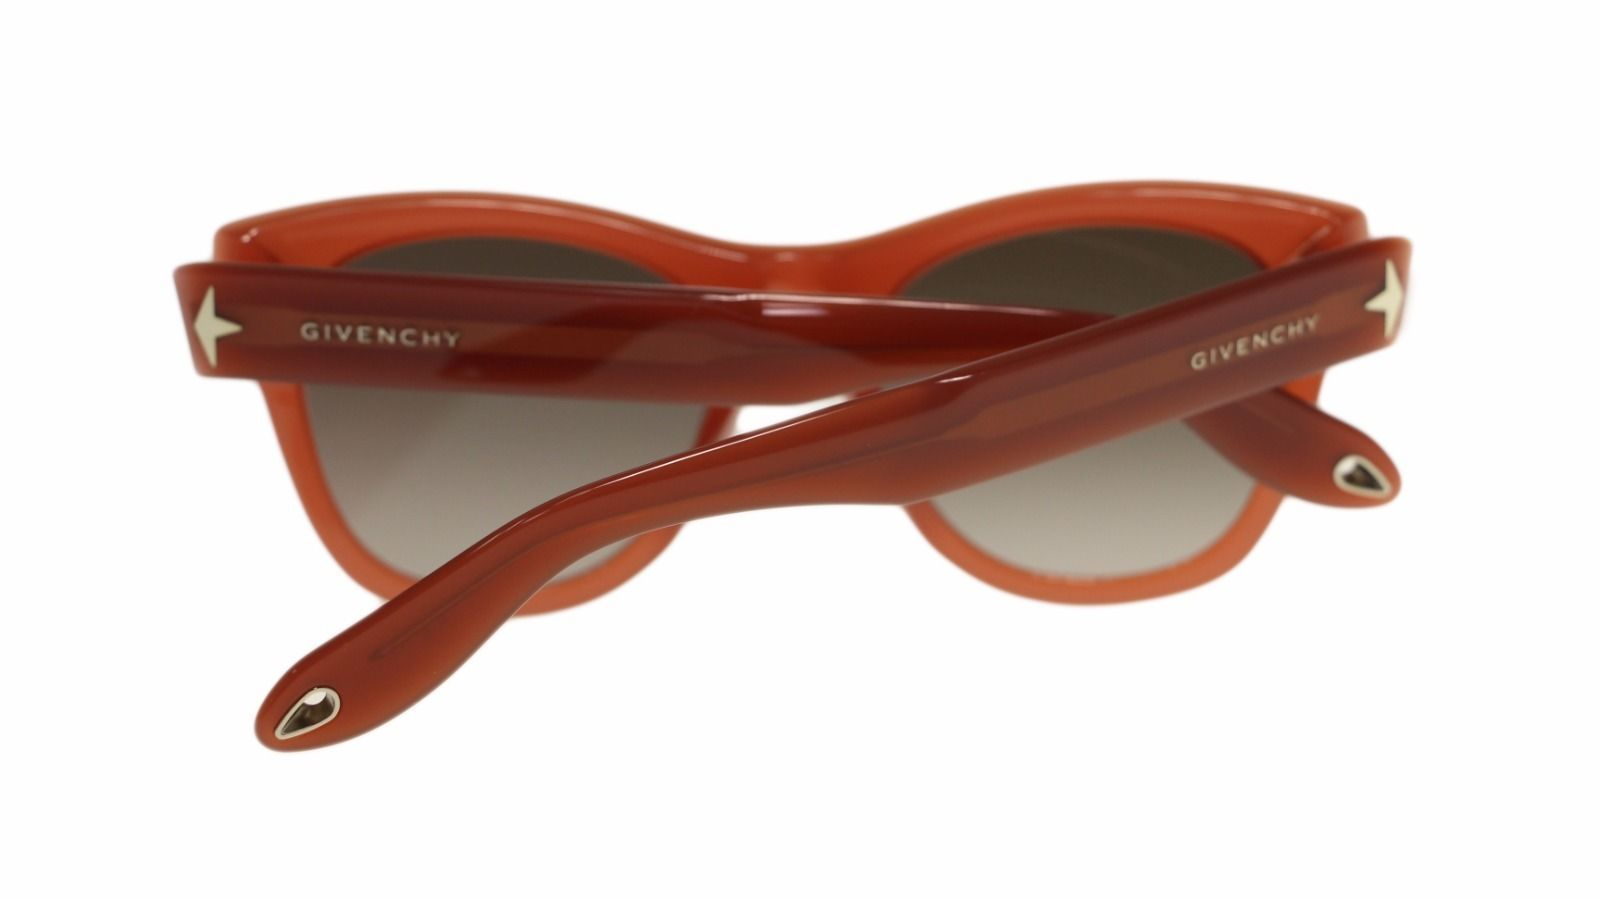 Givenchy Womens Sunglasses GV7010 GGX Opal Powder/Brown Gradient Lens Round 51mm